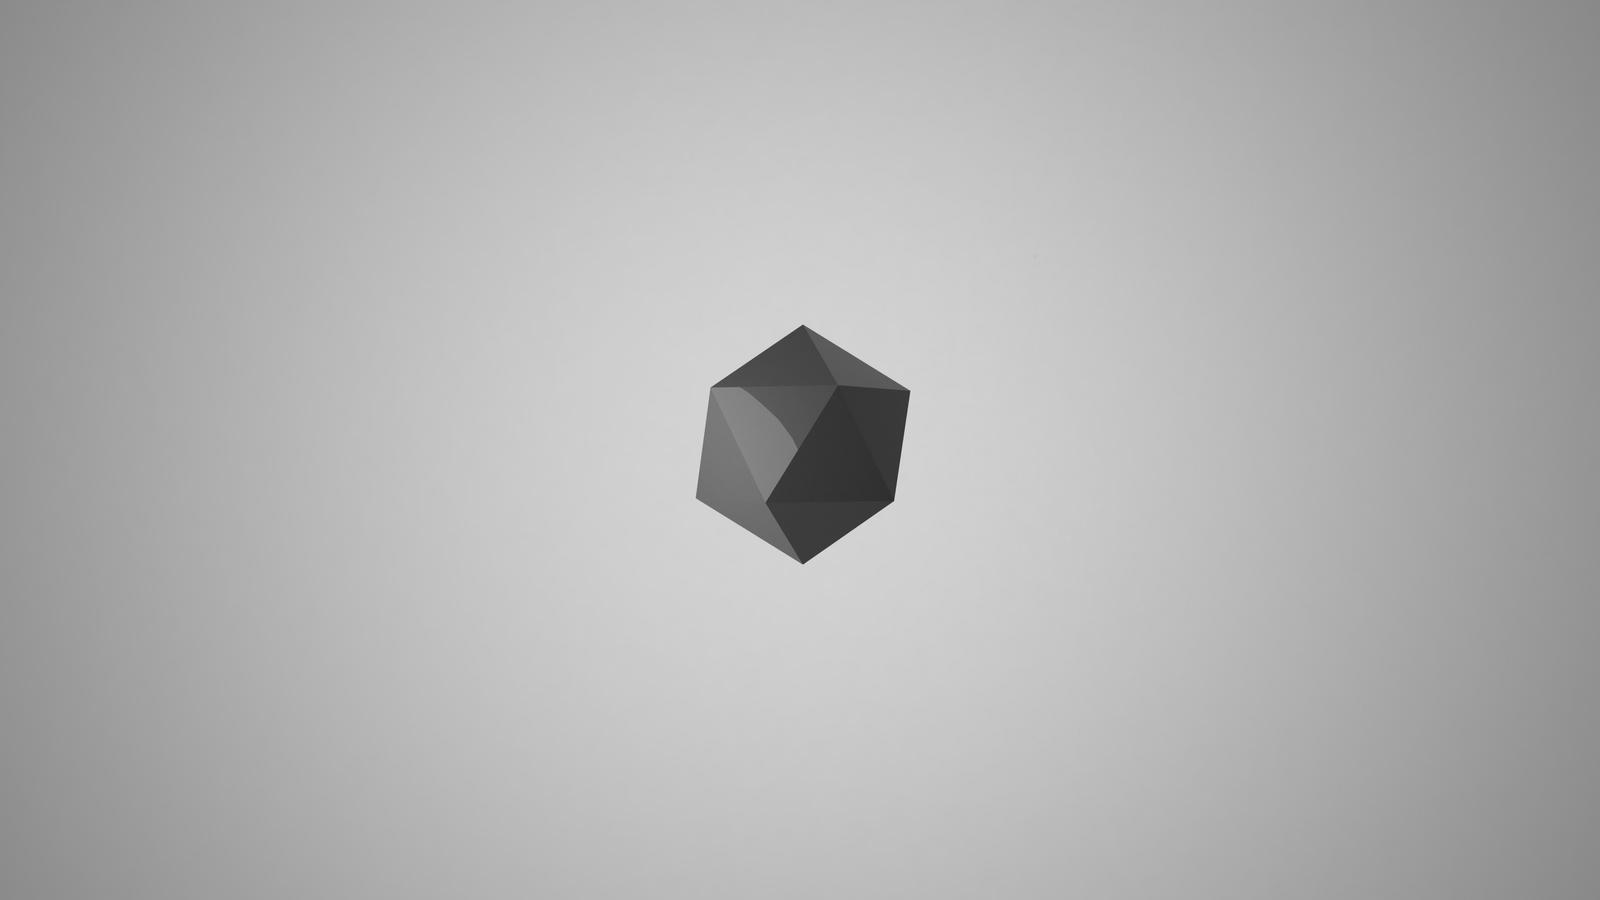 4k minimalist wallpaper 3d by clover on deviantart for Minimal art reddit